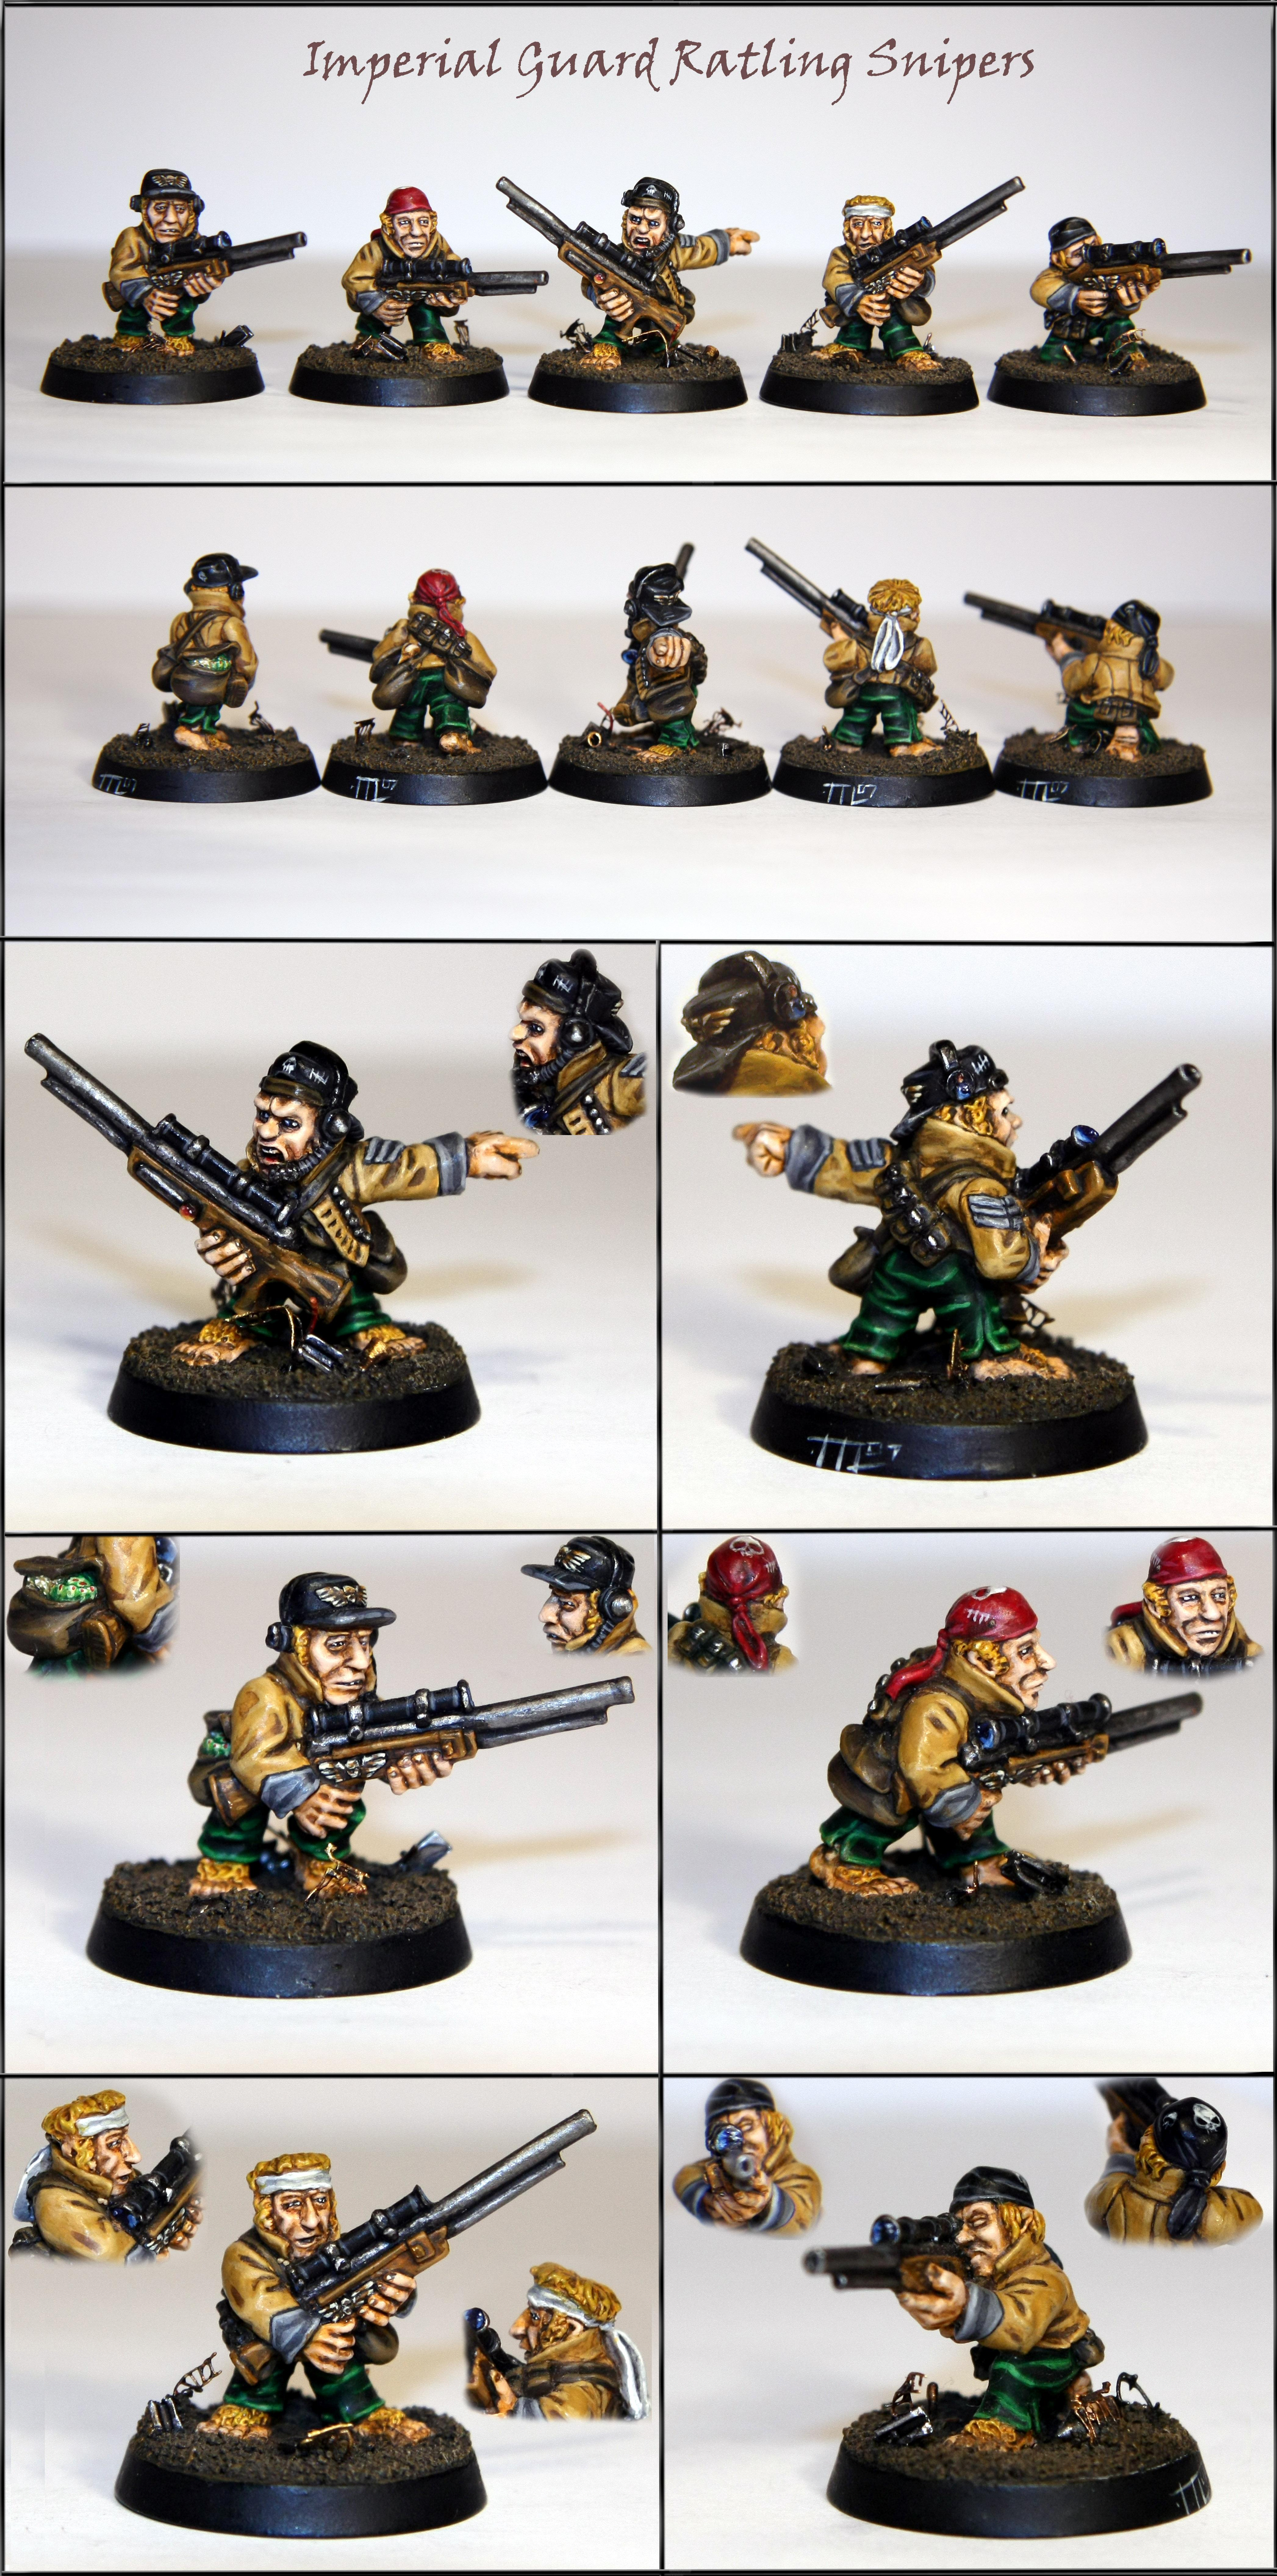 Imperial Guard, Out Of Production, Ratlings, Snipers